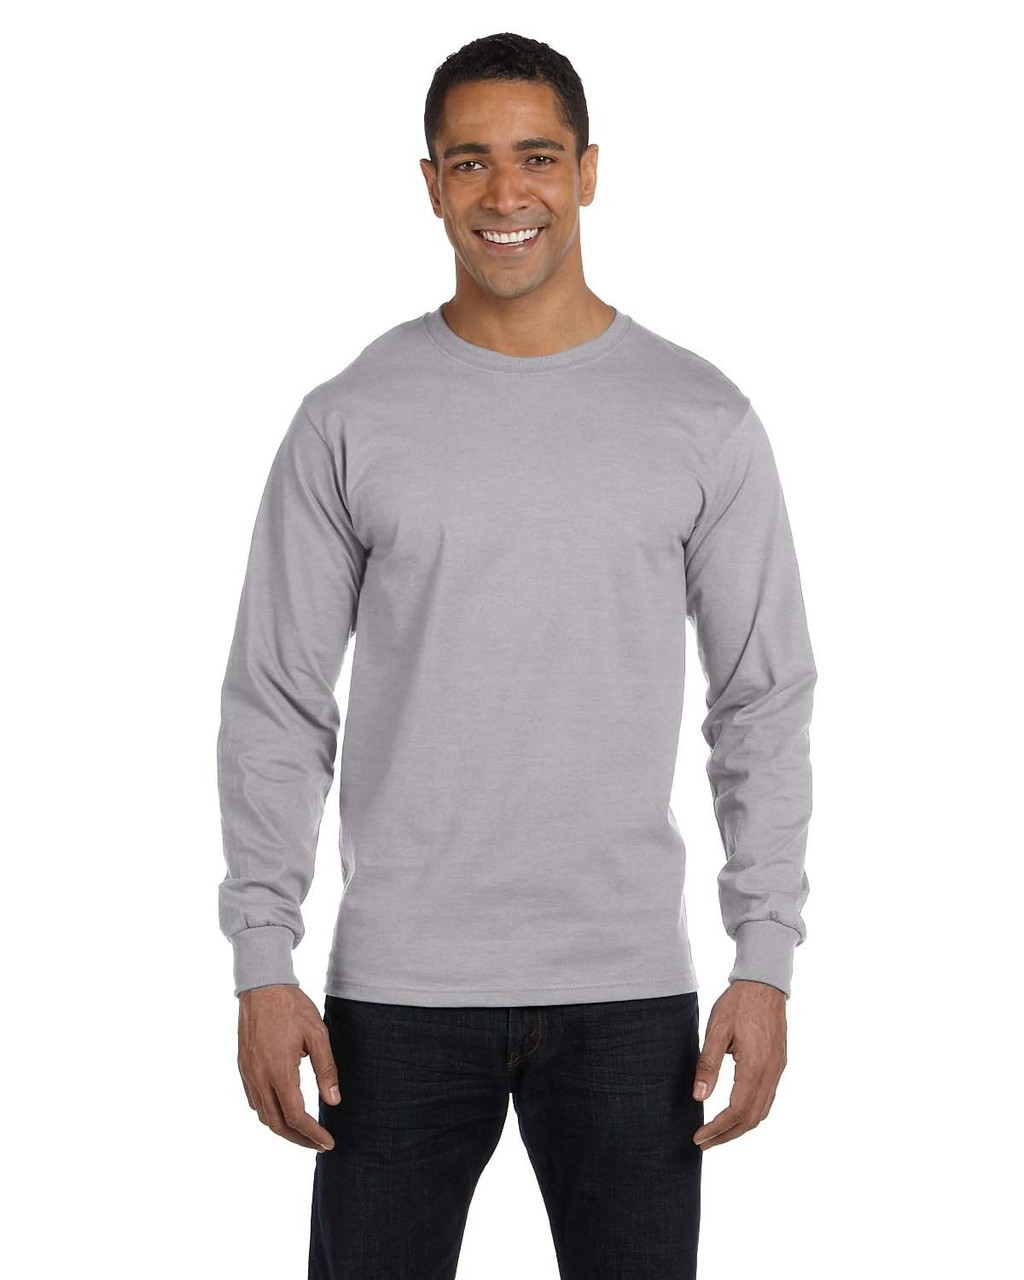 Sport Grey - G840 DryBlend 50/50 Long Sleeve T-Shirt